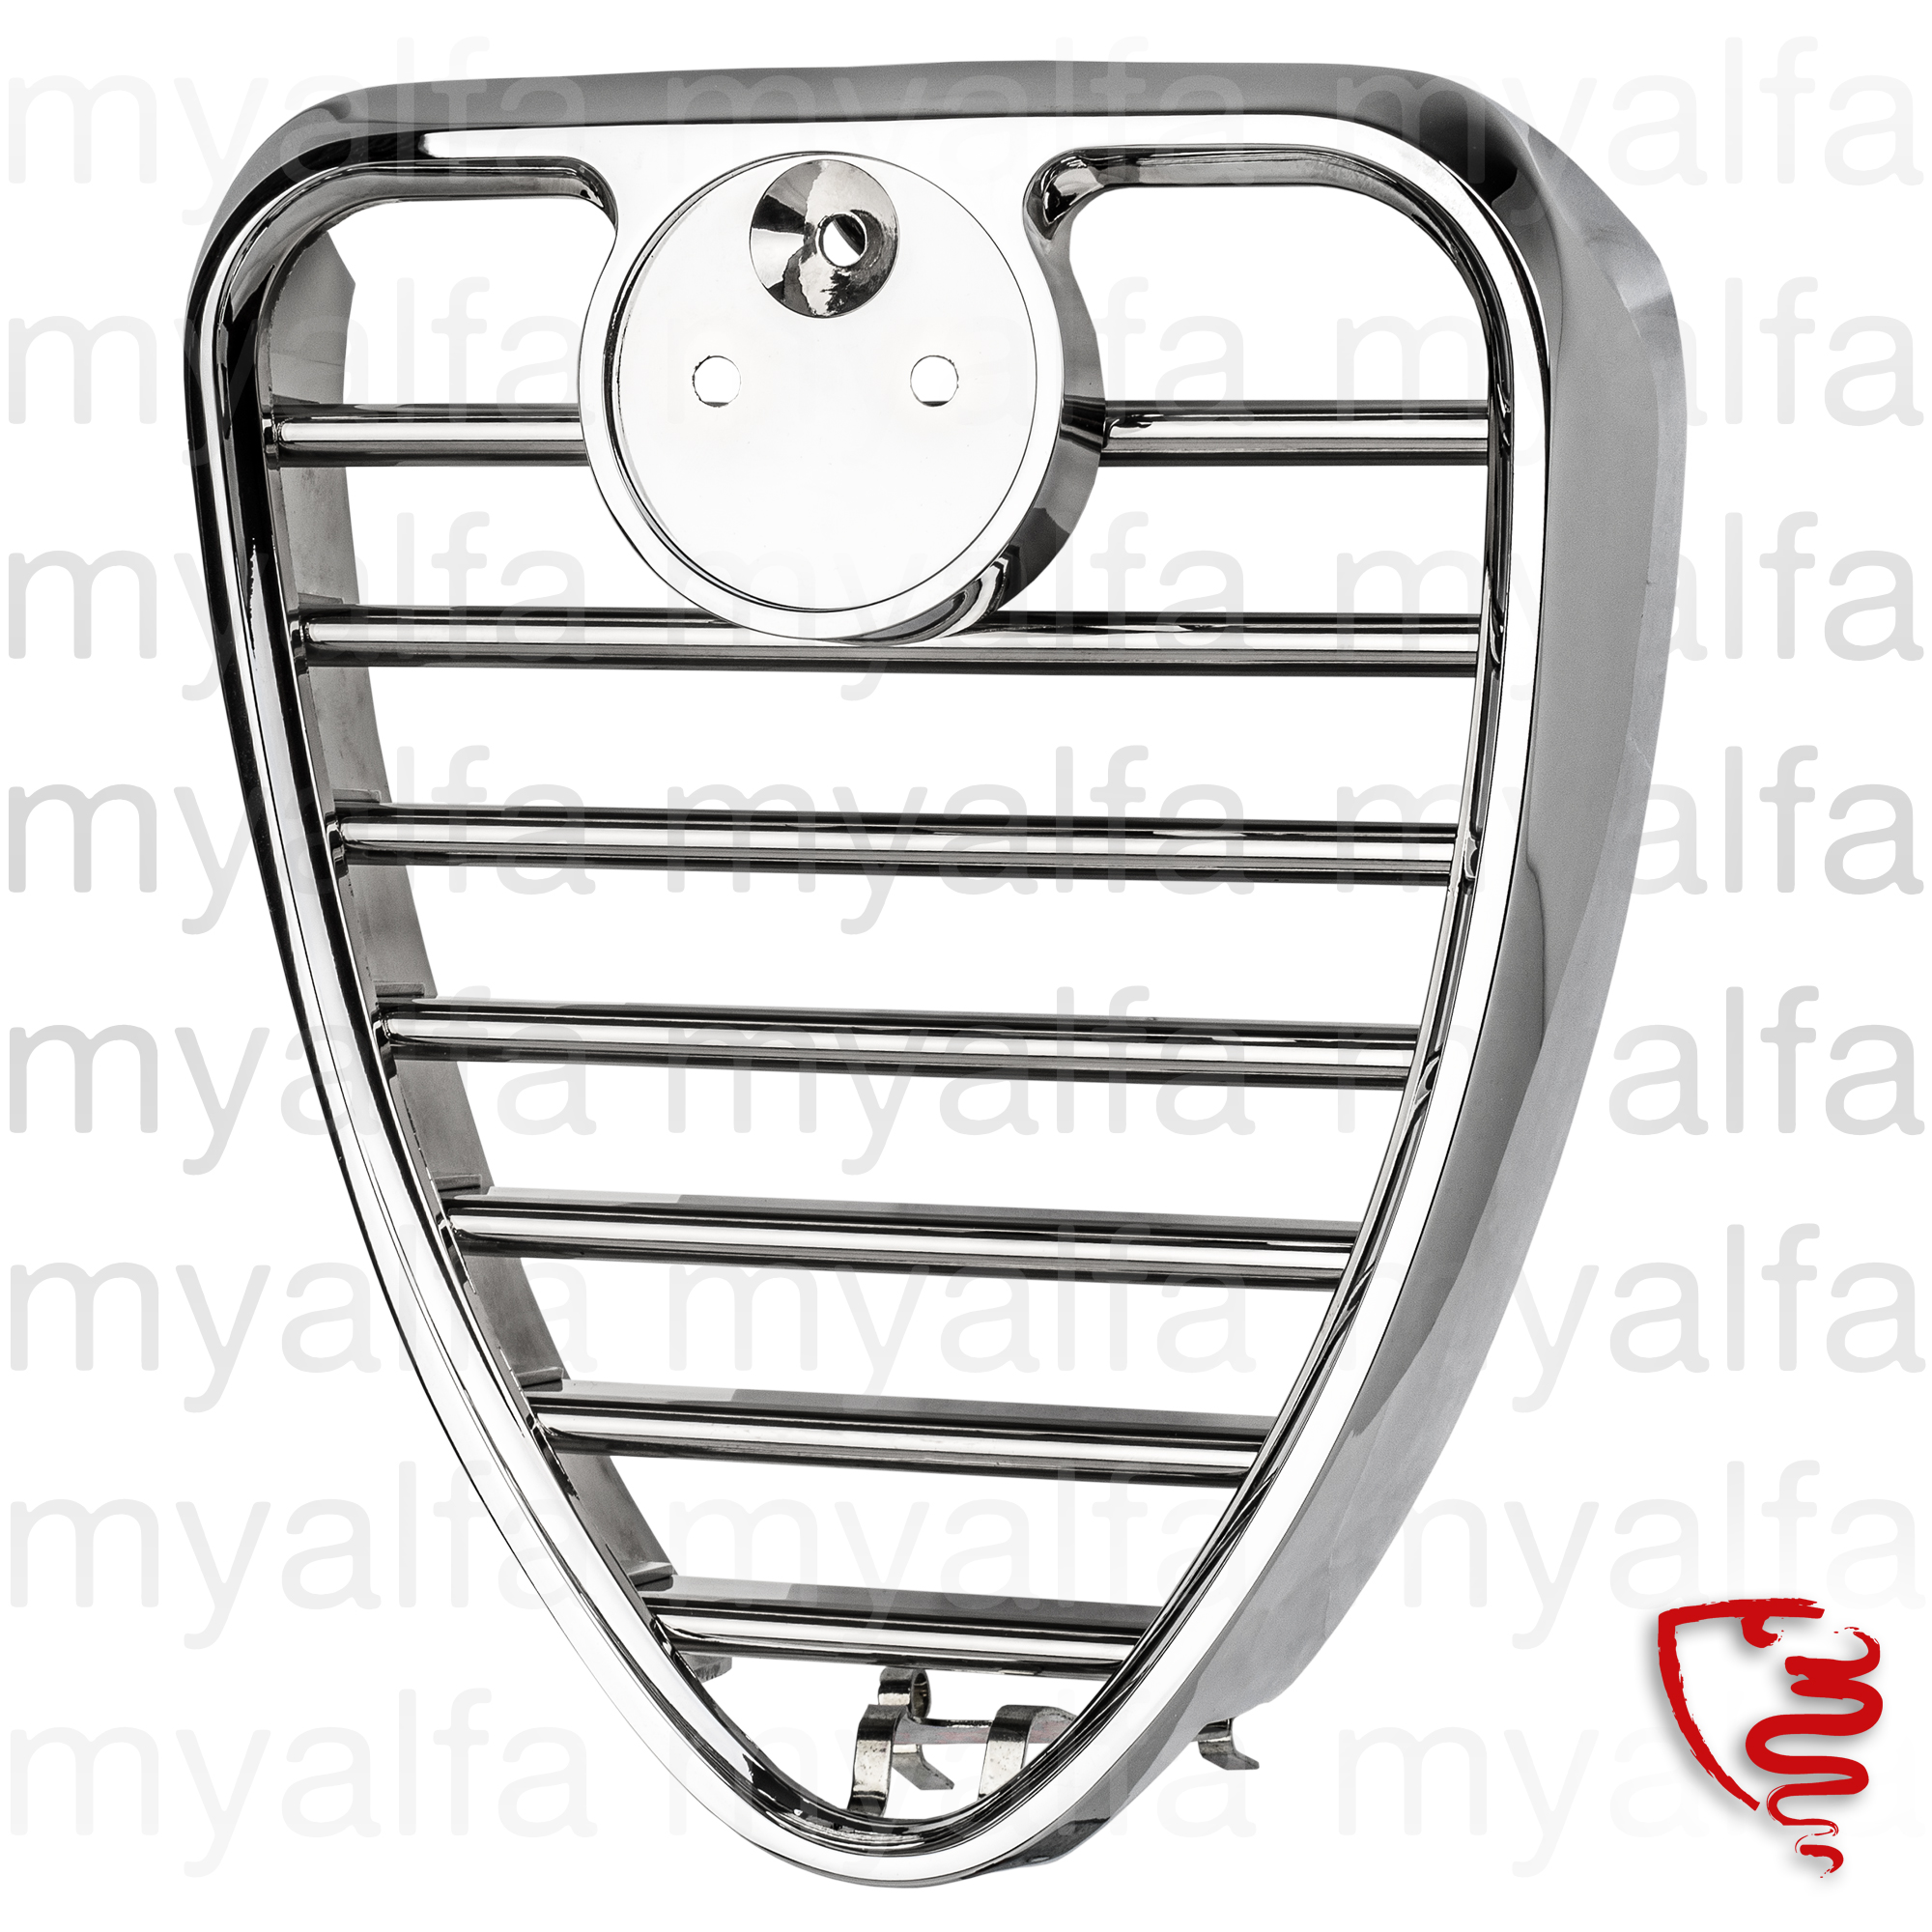 Escudeto central 2nd series 1300-1750 for 105/115, Coupe, Body parts, Chrome Parts, Front